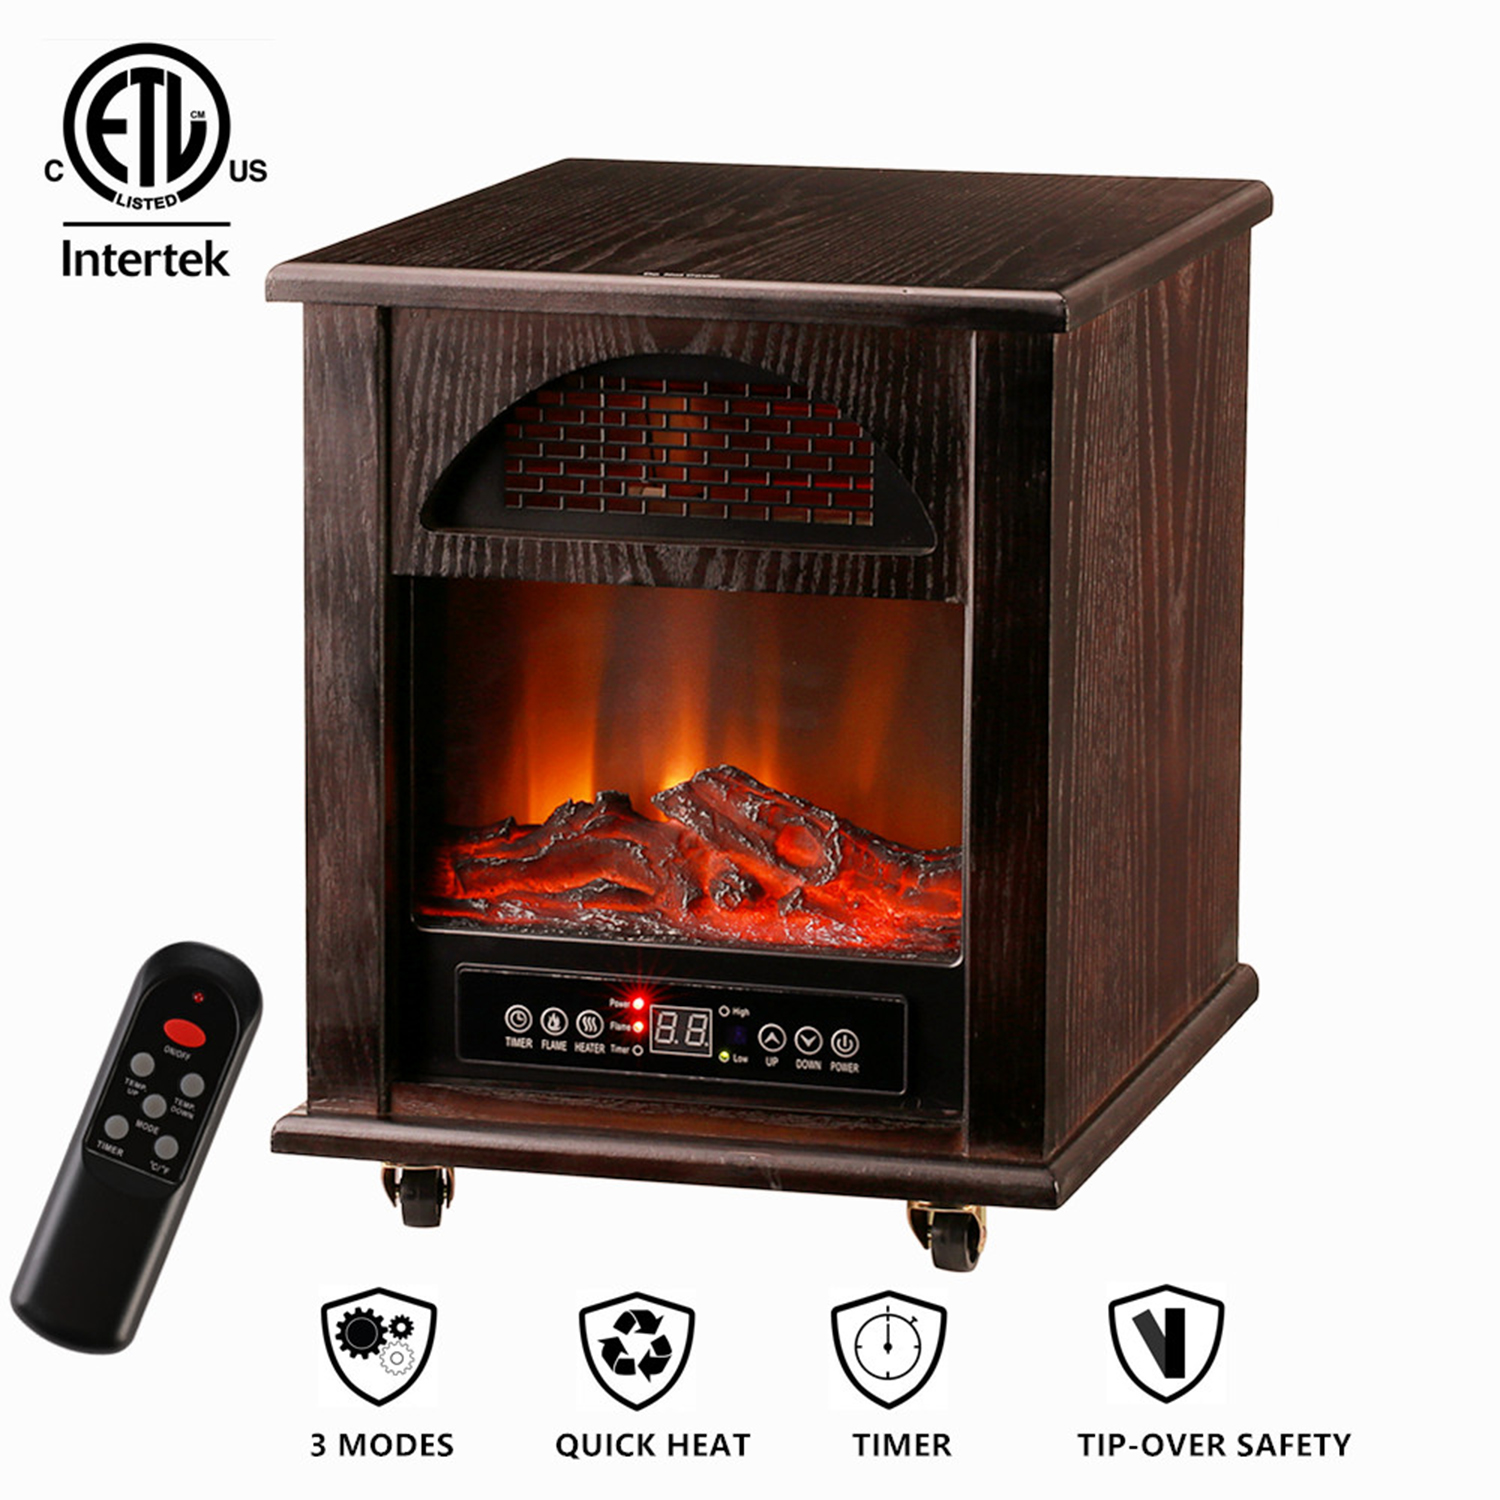 Space Heaters Fireplace Ainfox Infrared Quartz Electric Fireplace Stove Space Heater 1000w 1500w Heating Systems With Thermostat Tip Over And Overheat Protection Remote